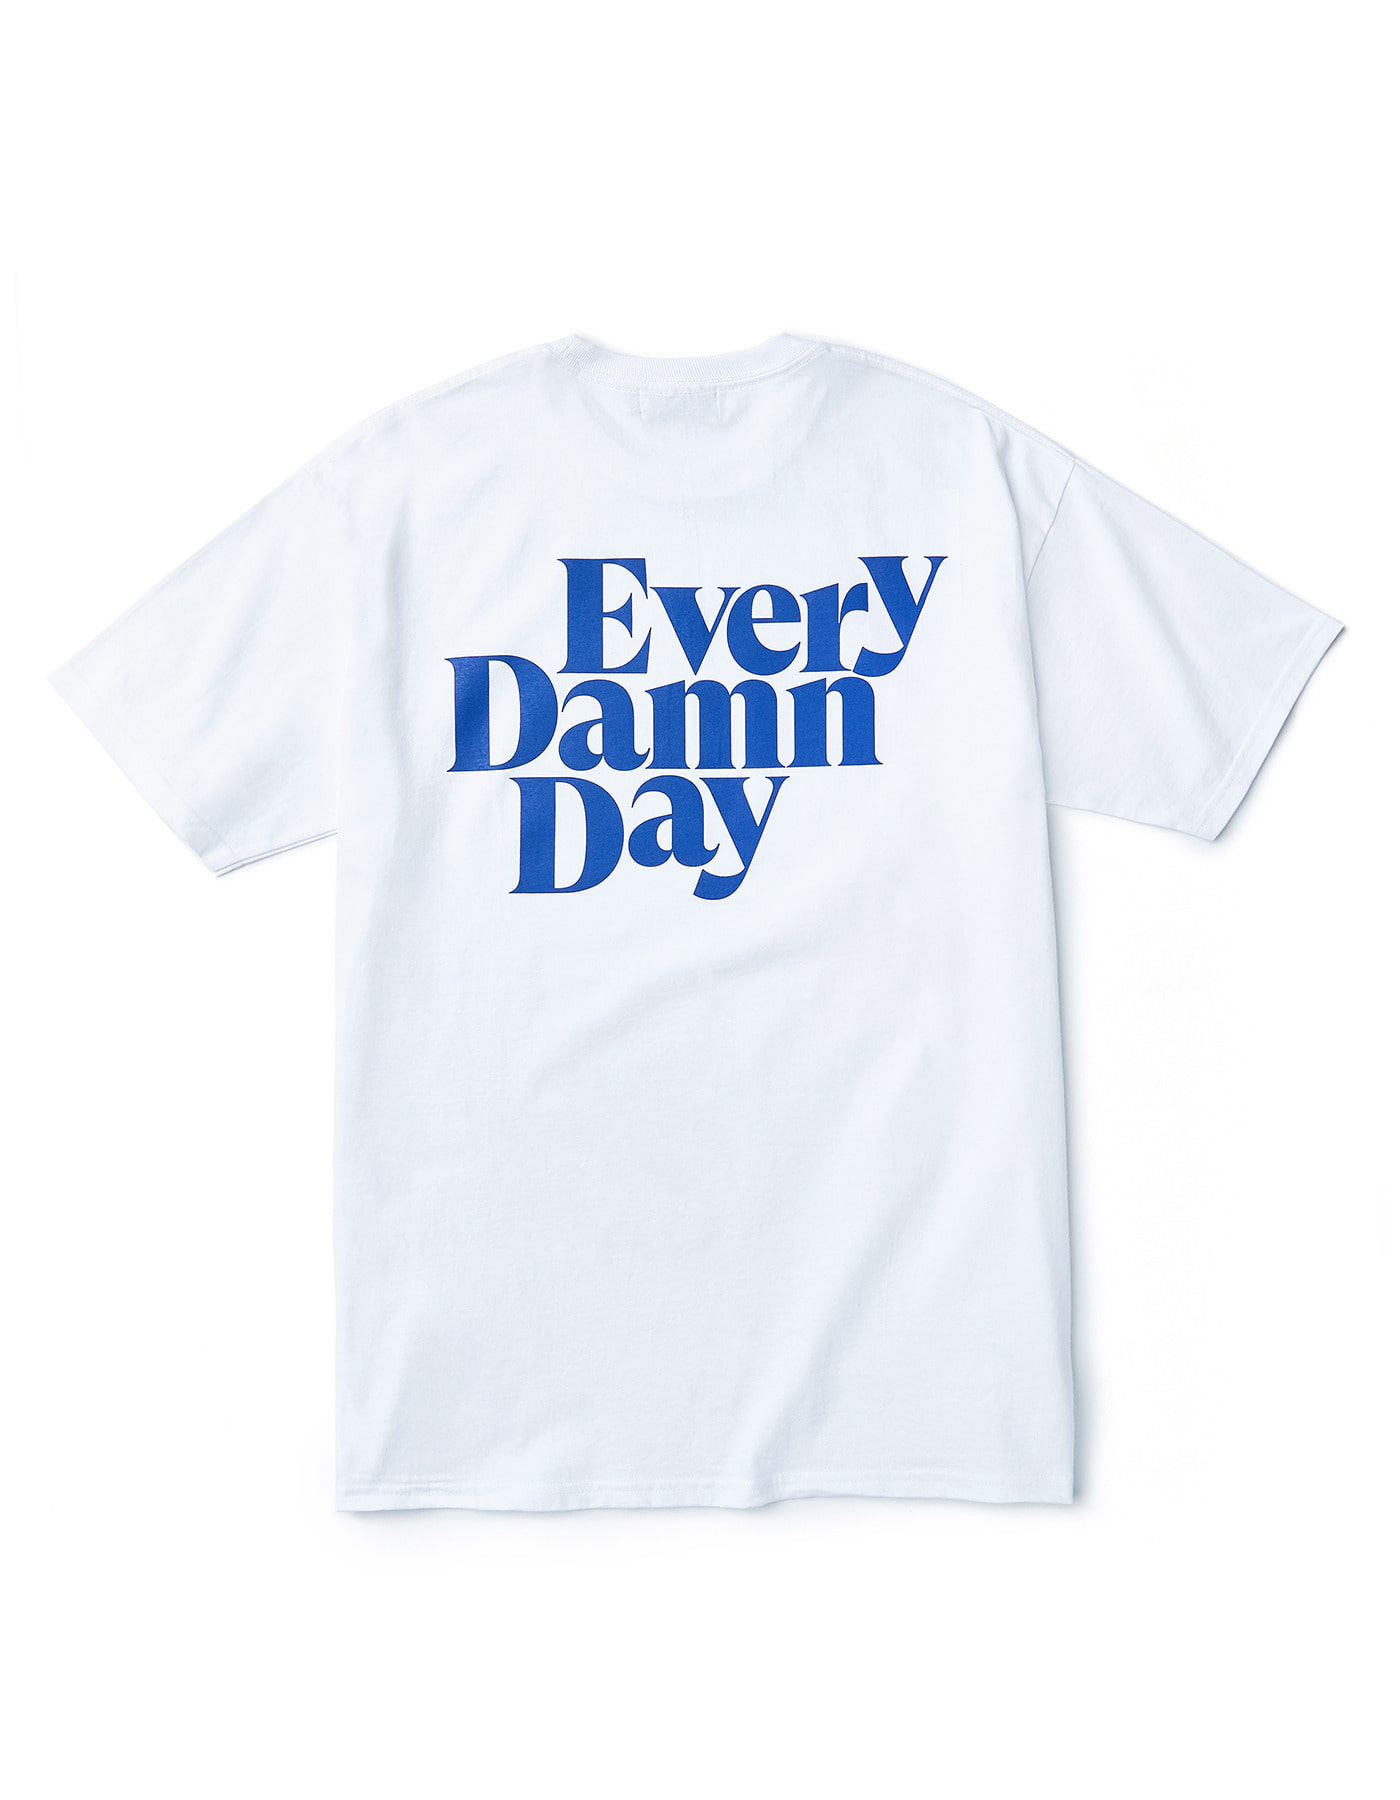 Every Damn Day T-shirts - White/Blue